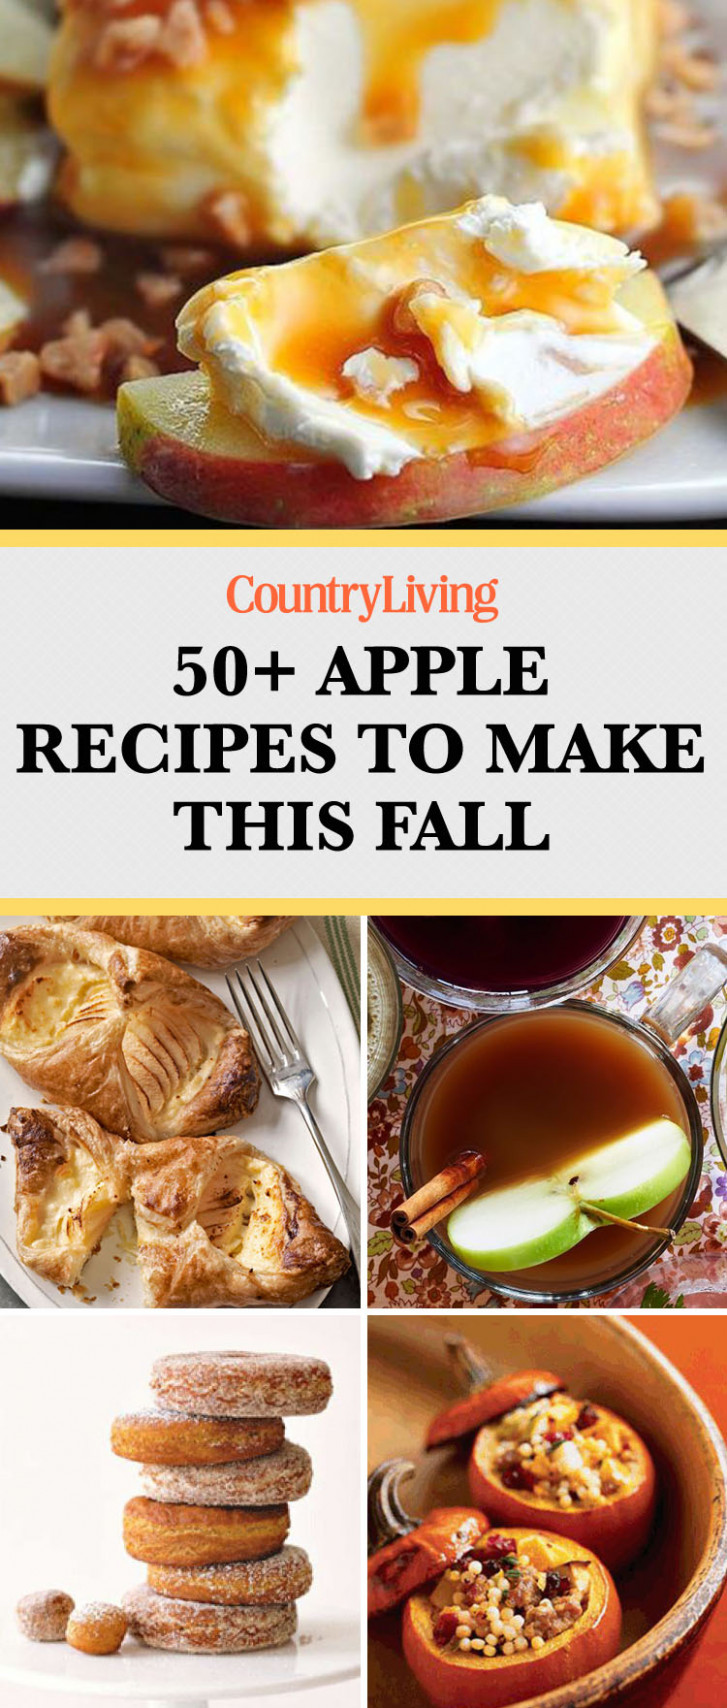 55+ Easy Apple Recipes - What to Do With Apples